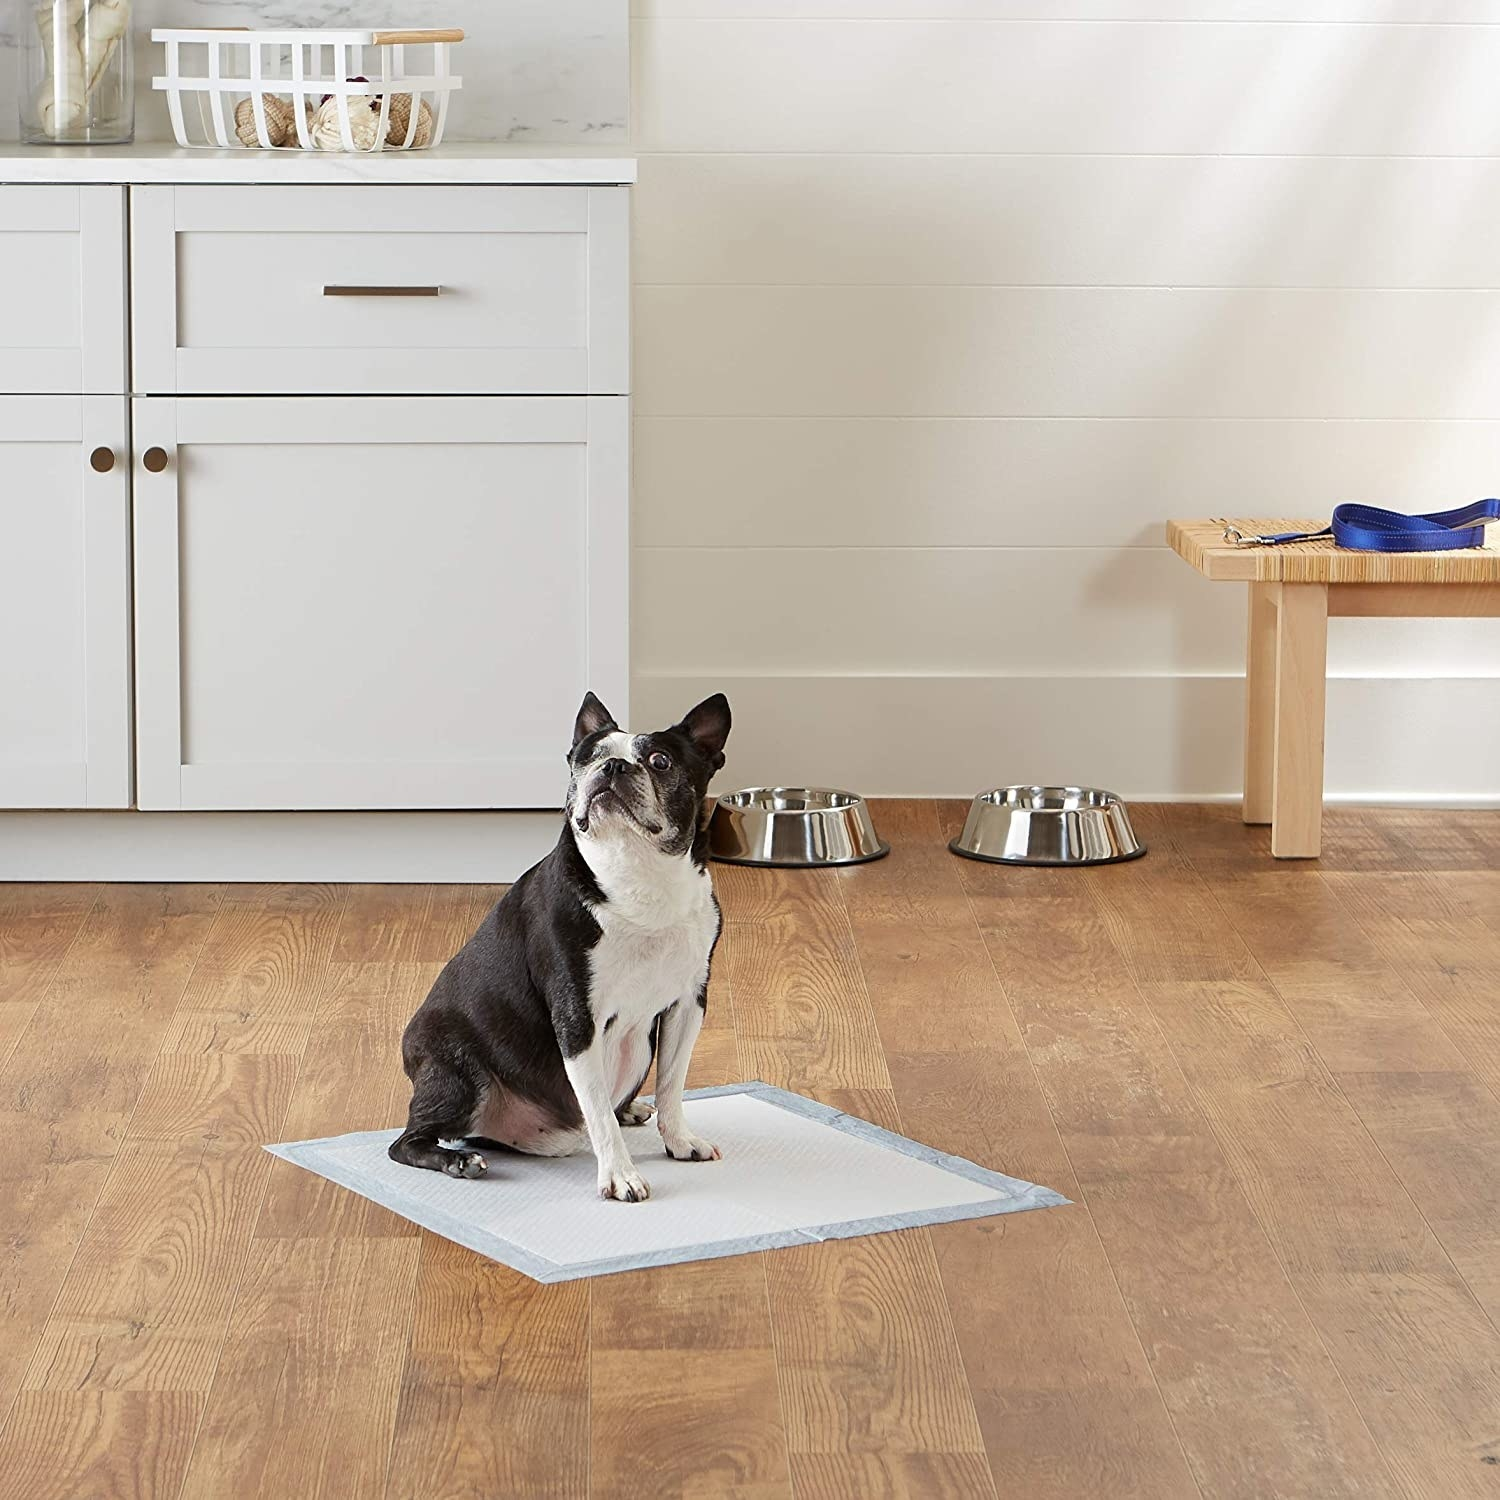 dog sitting on a puppy pad in a kitchen